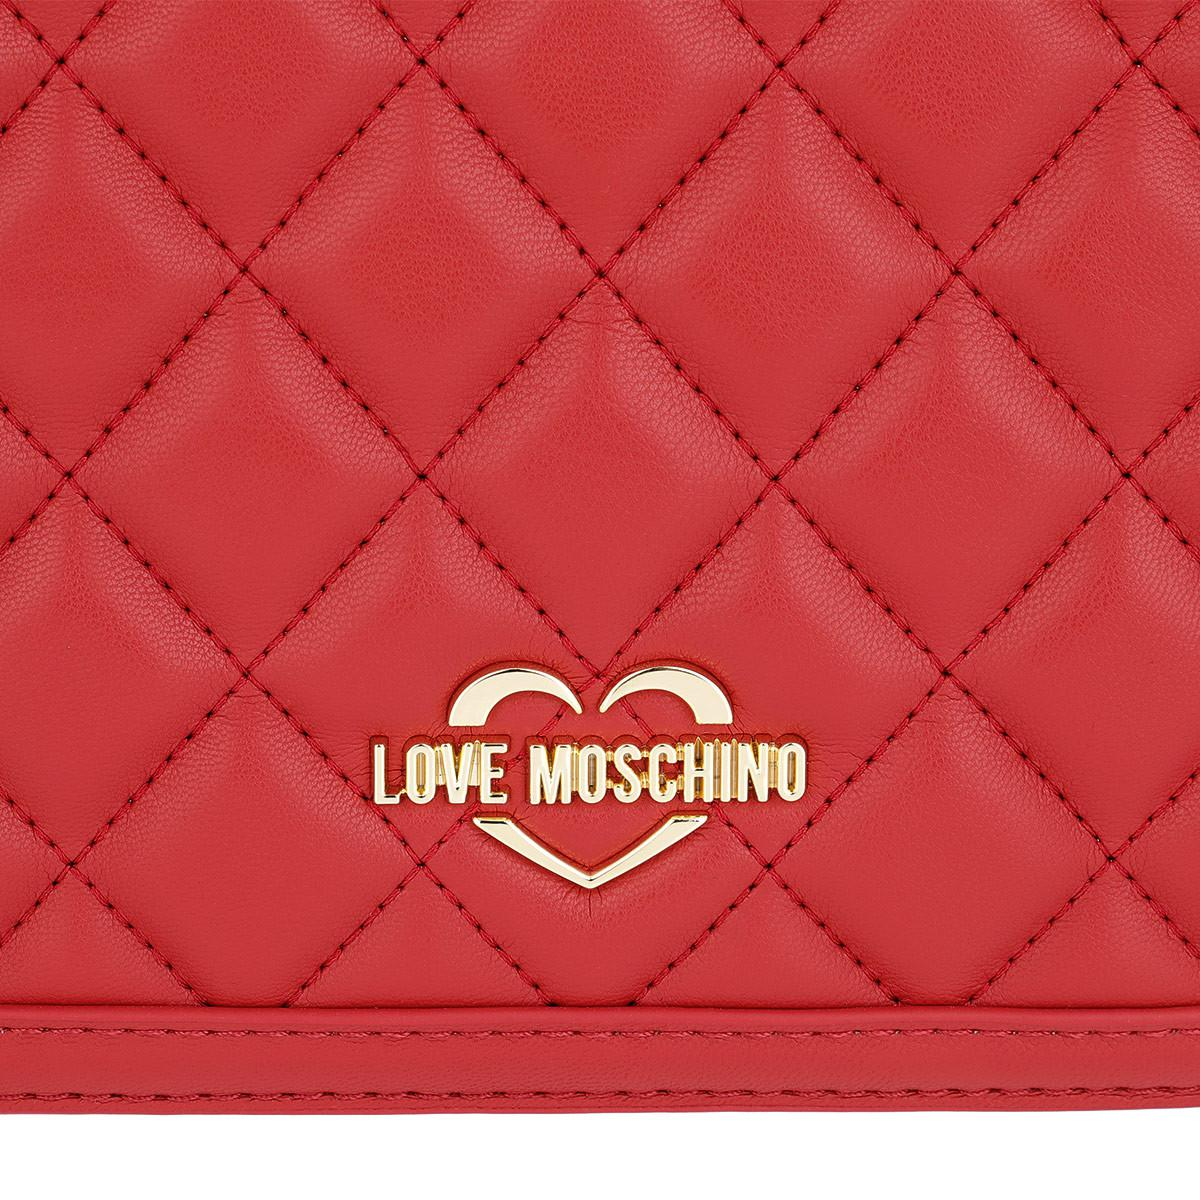 Love Moschino Synthetic Quilted Nappa Chain Crossbody Bag Rossa in Red